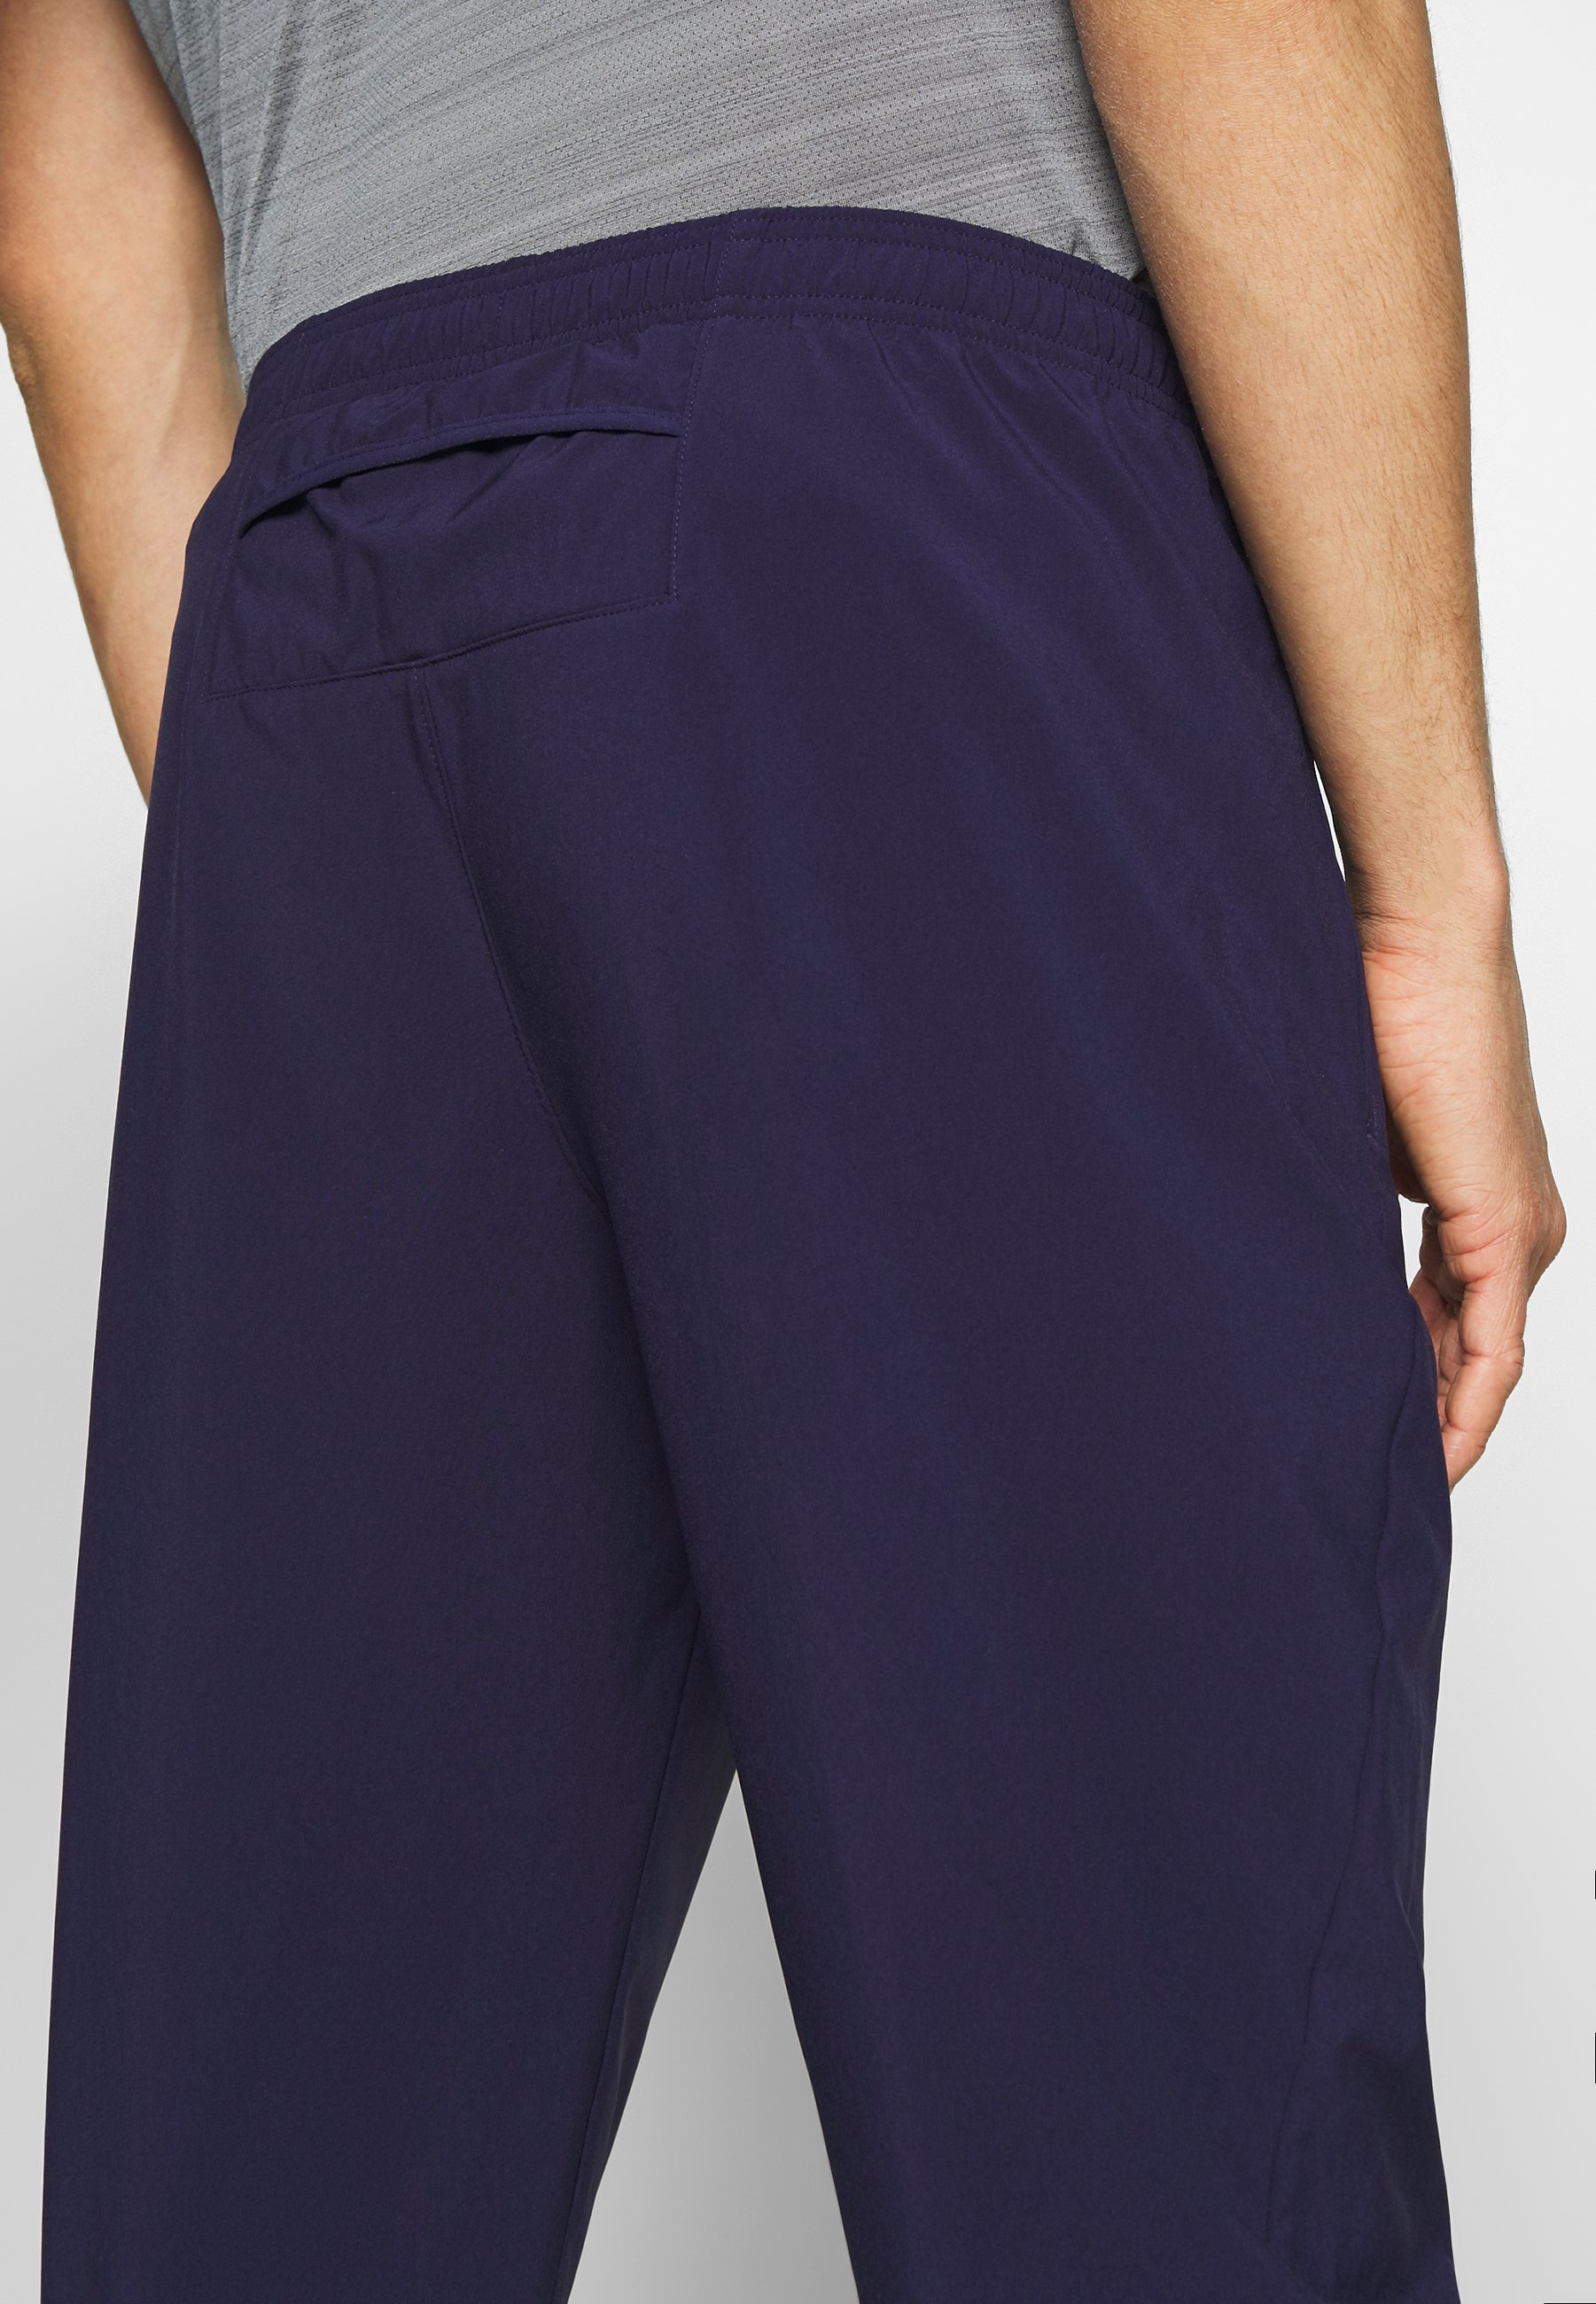 ESSENTIAL PANT Joggebukse imperial purplereflective silver